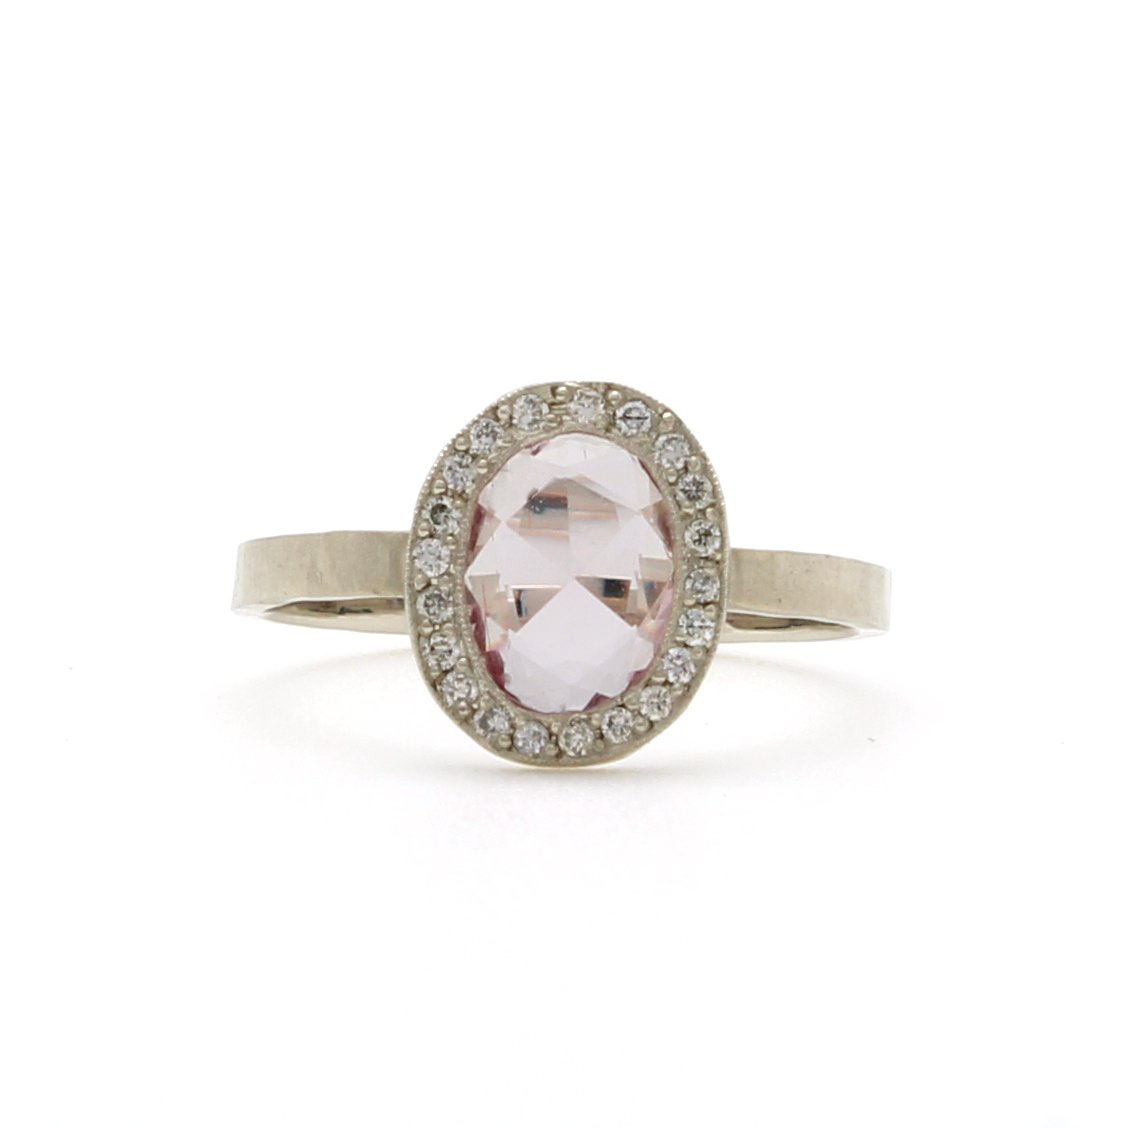 rose cut diamond wedding kilar pink fullxfull at il morganite sapphire thin available rings engagement calculated sku gold band oval checkout shipping stone ring